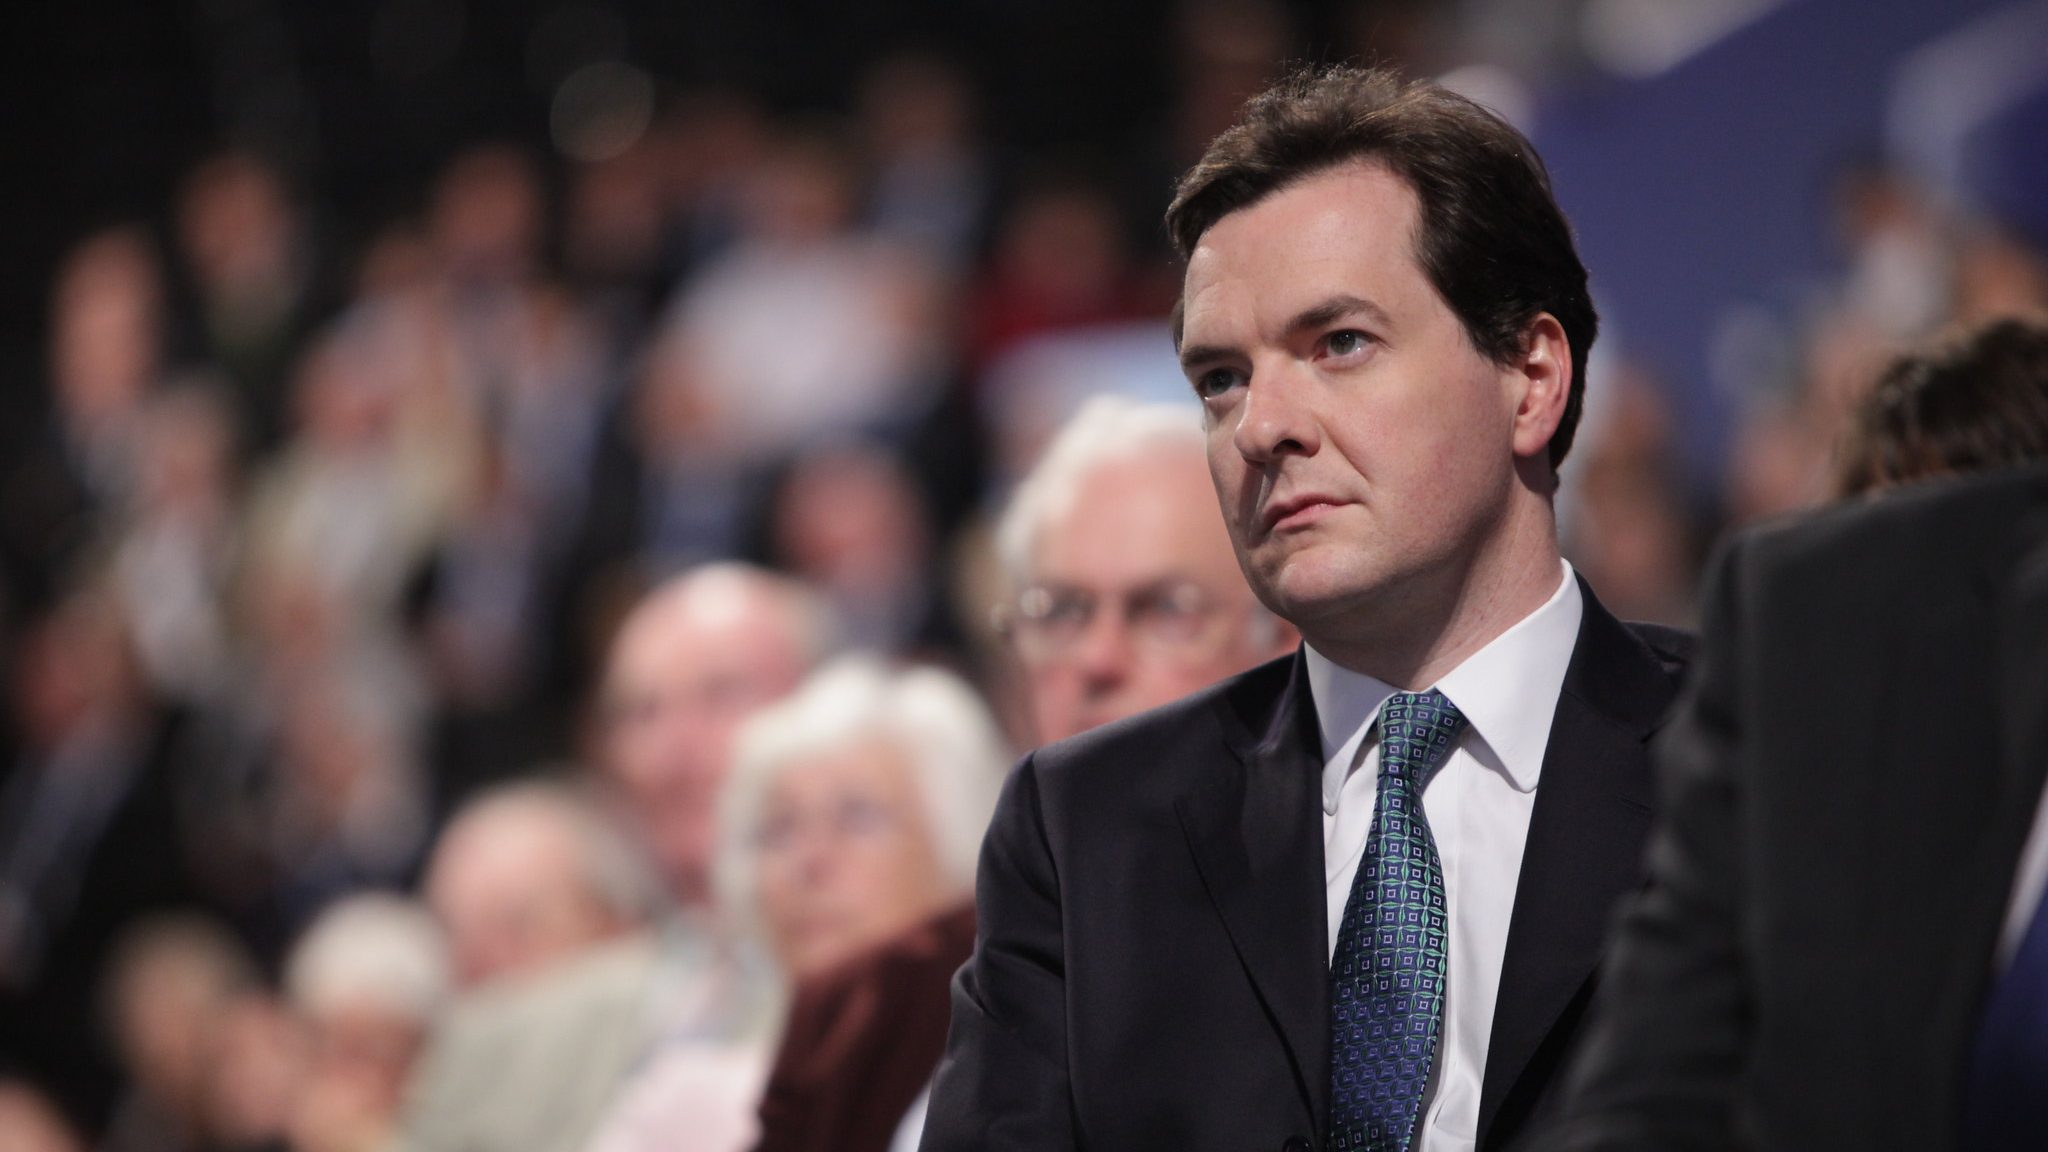 George Osborne has been appointed chair of the British Museum